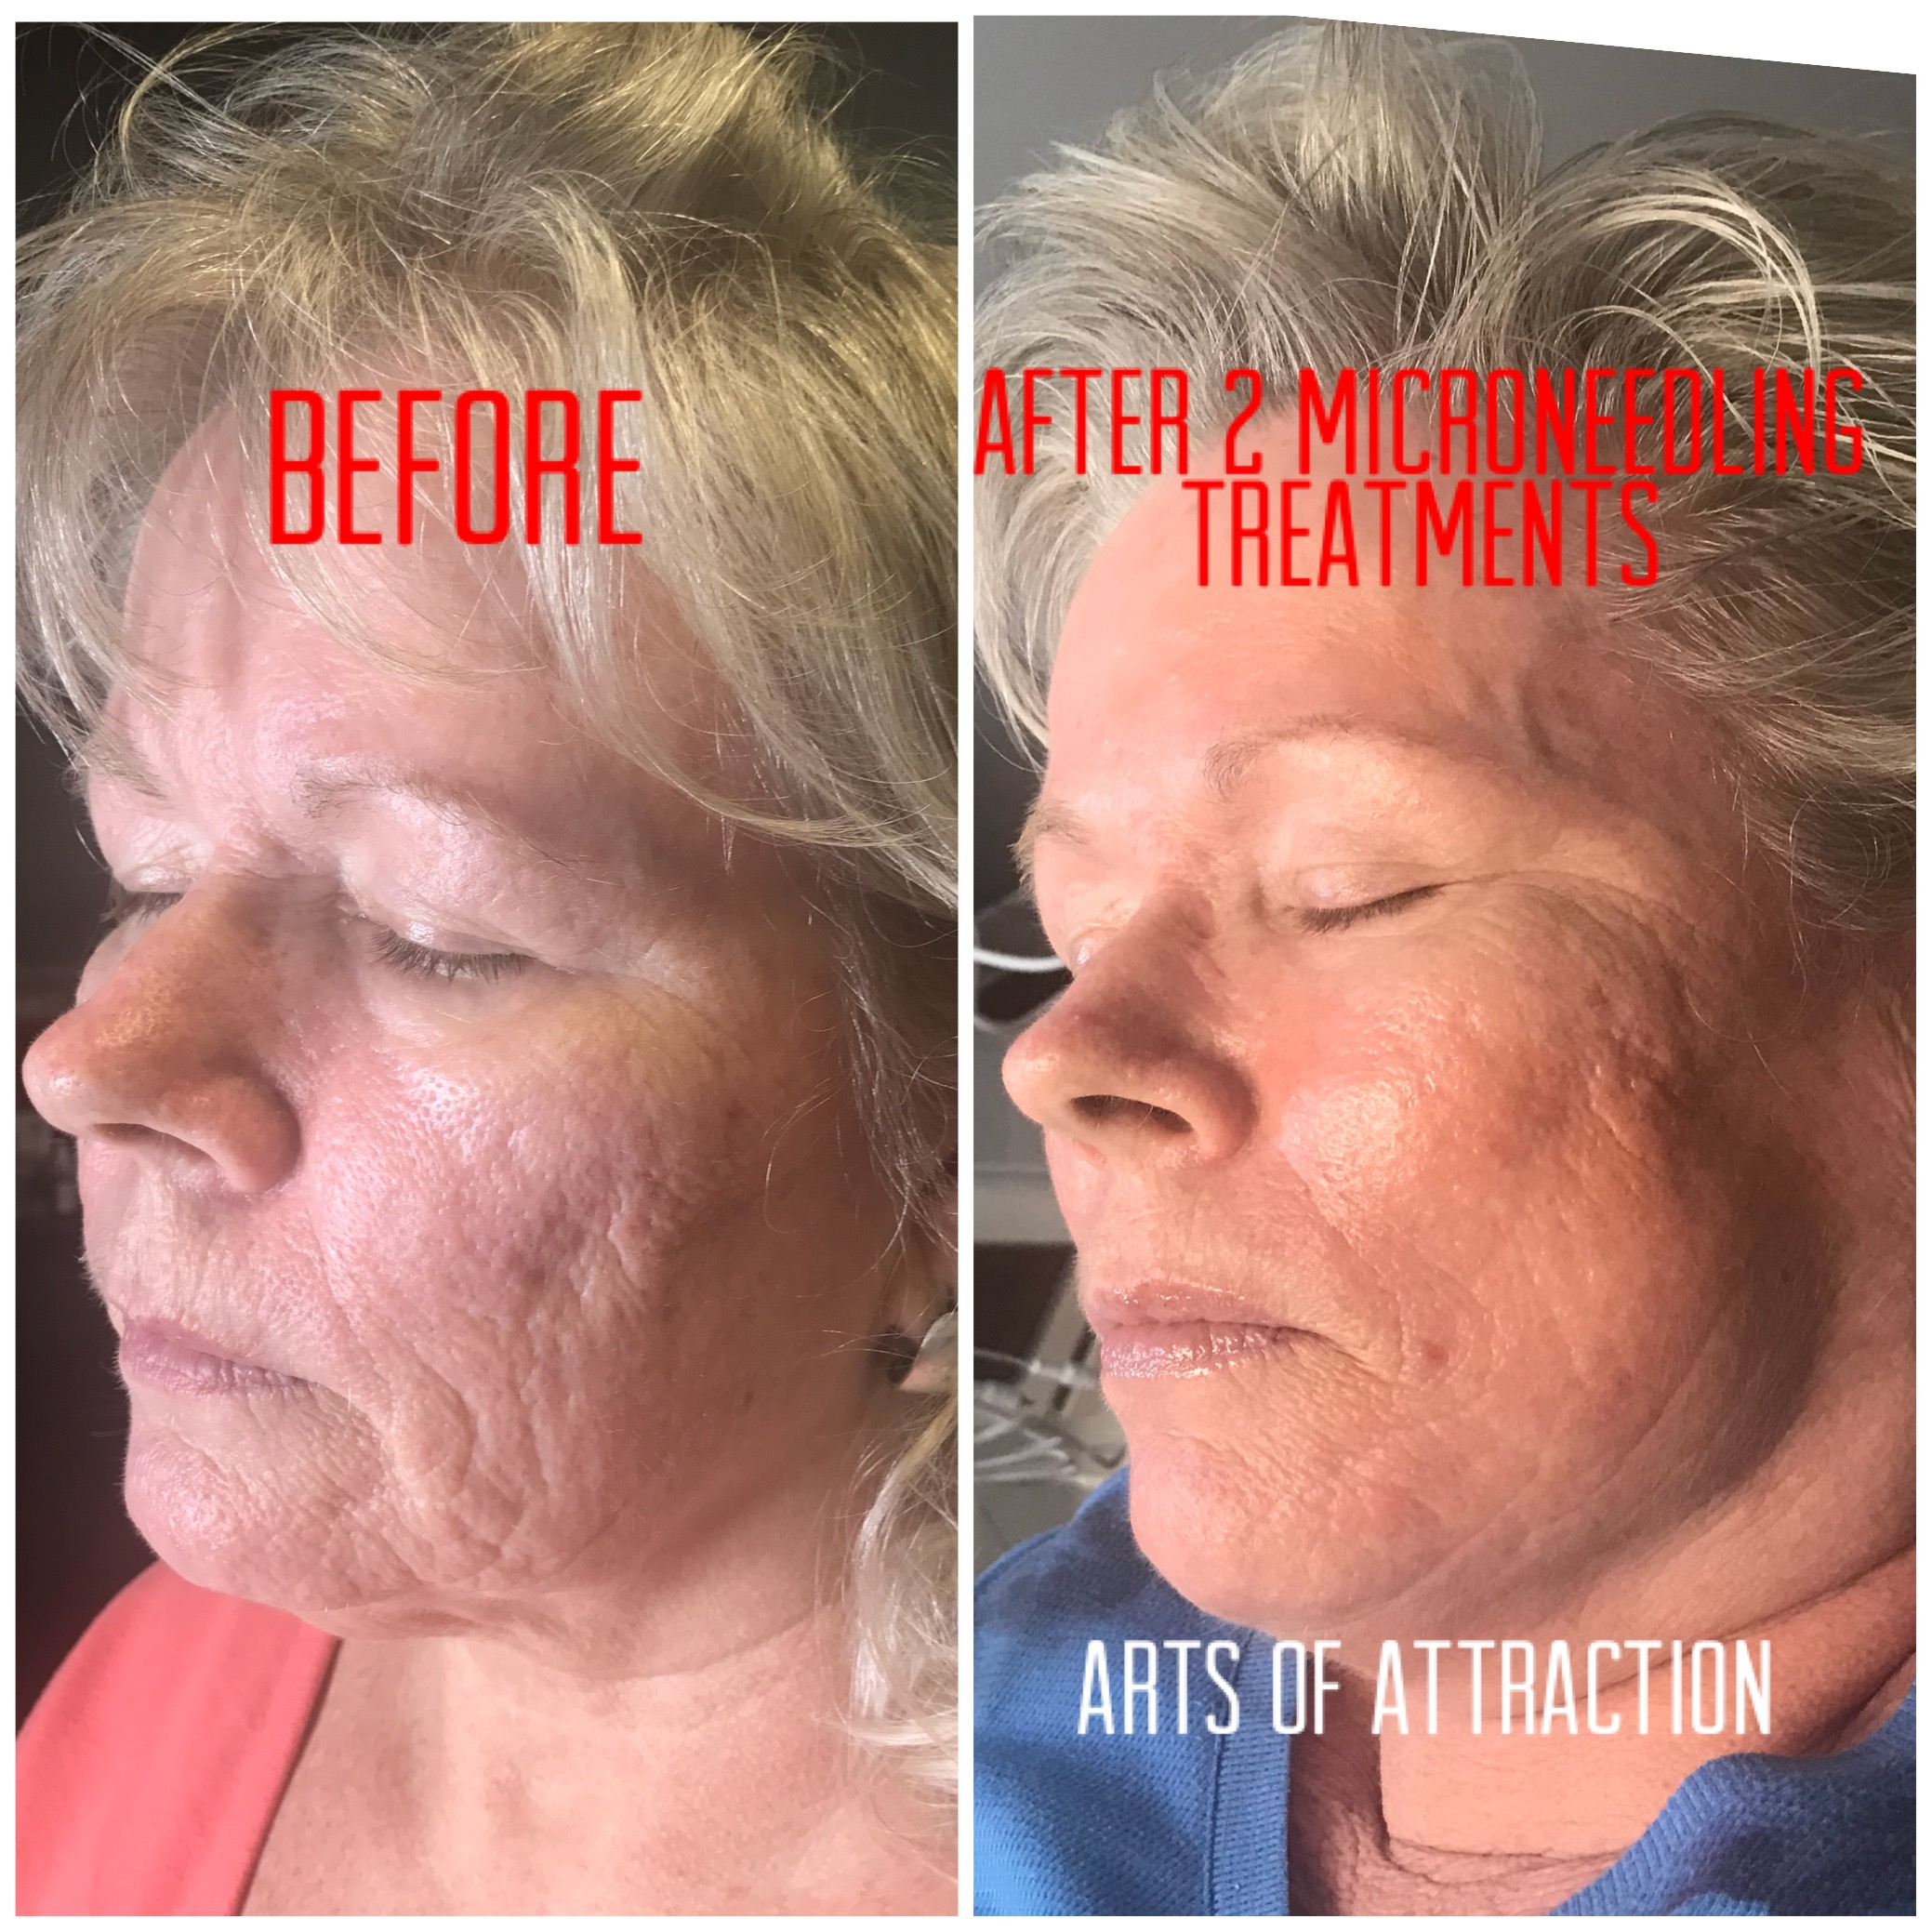 What are the benefits of microneedling?  Microneedling helps reduce the signs of aging, improve the appearance of acne scars and rejuvenate aging skin. Along with hyperpigmentation, Dark sun spots, wrinkles, uneven skin tone, stretch marks and much more. Microneedling is effective for all skin types.  Is appropriate for all skin types.The Microneedling device creates hundreds of tiny micro-channels in the skin with minimal damage to the epidermis. It disrupts the junctions between the skin cells, temporarily disrupting the skin's barrier function. This brief, mechanical disruption does not cause the melanocytes (pigment-producing cells) in the epidermis to react by increasing pigment production and darkening the skin in a process called hyperpigmentation. Therefore, it can be used on all skin types, including darker skin that is more susceptible to hyperpigmentation.  Can be used on many body parts.The needle depth adjusts from .25 mm up to 2.5 mm, allowing the provider to tailor the treatments to the patient's particular skin thickness as well as his or her needs. It has variable needle depth makes it more versatile than traditional rollers, and it can be used efficiently on many parts of the body.  7 Surprising Microneedling benefits for your skin!   #1. Improves the quality and texture of your skin (immediately)    #2. Reduces pock marks and scarring    #3. Reduces black heads    #4. Treats acne and cystic acne    #5. Exfoliates the skin     #6. Makes you look younger by reducing fine lines and wrinkles    #7. Reduces hyperpigmentation and evens skin the skin tone   Does microneedling hurt?  A topical anesthetic is typically applied prior to a the procedure. This allows for a comfortable experience for most people. Generally, patients report feeling just the slight vibration during the procedure. Microneedling used to treat acne scars, the patients' average pain rating was only 1.08 out of 10. For most people, that's probably less painful than having your eyebrow